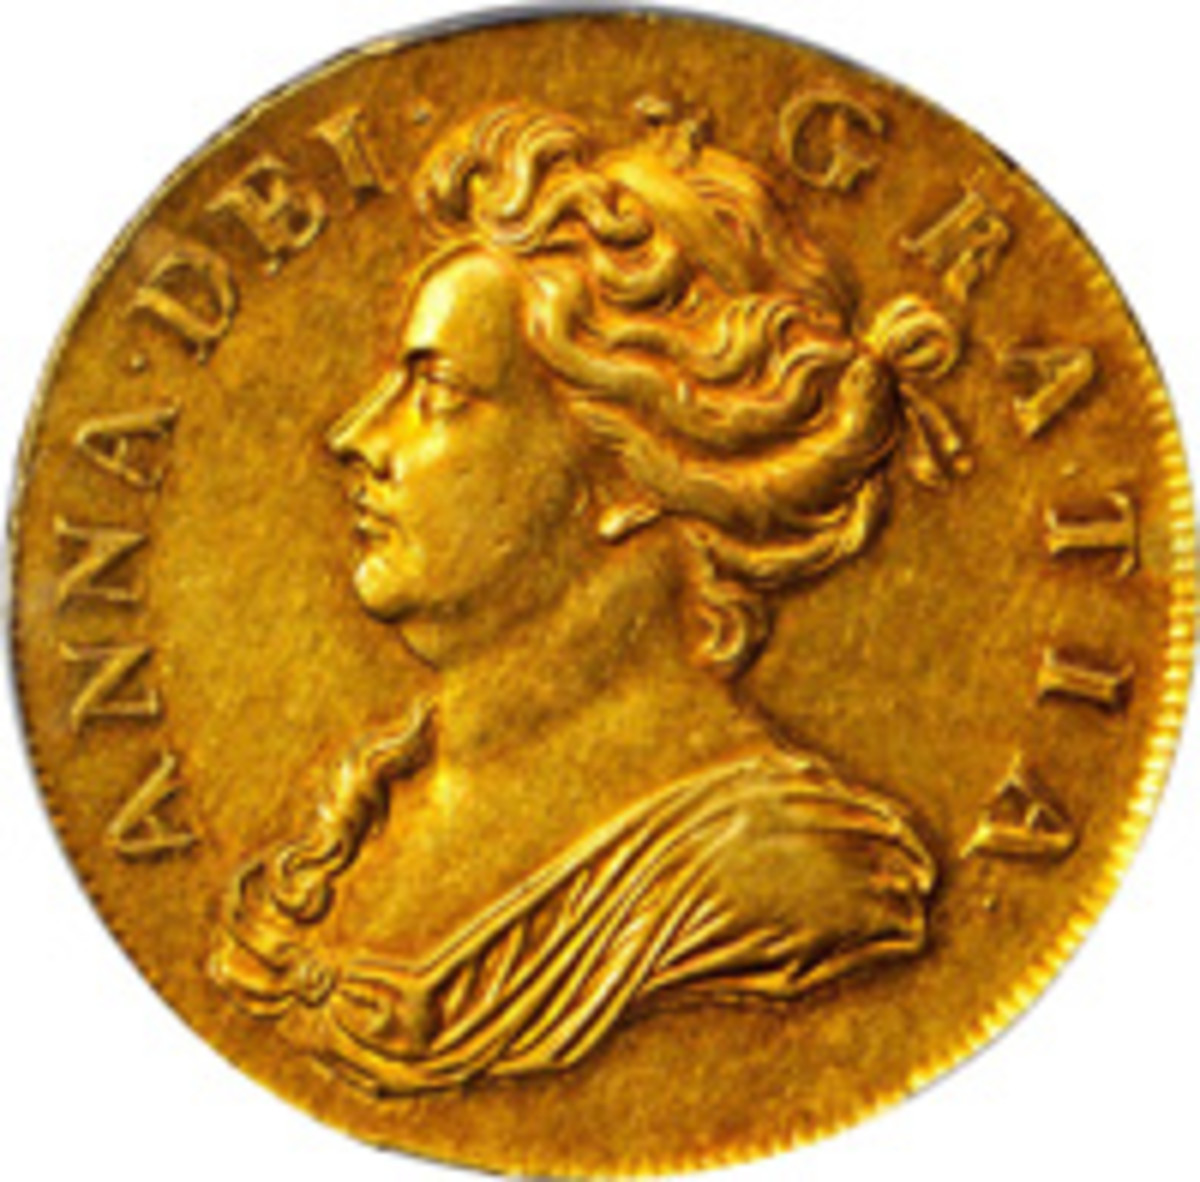 Rare and lustrous top-priced gold 5 guineas of Queen Anne. Struck prior to the union of the crowns of Scotland and England in 1705, it realized a stunning $84,000 in PCGS AU-55. (Image courtesy Stack's Bowers)